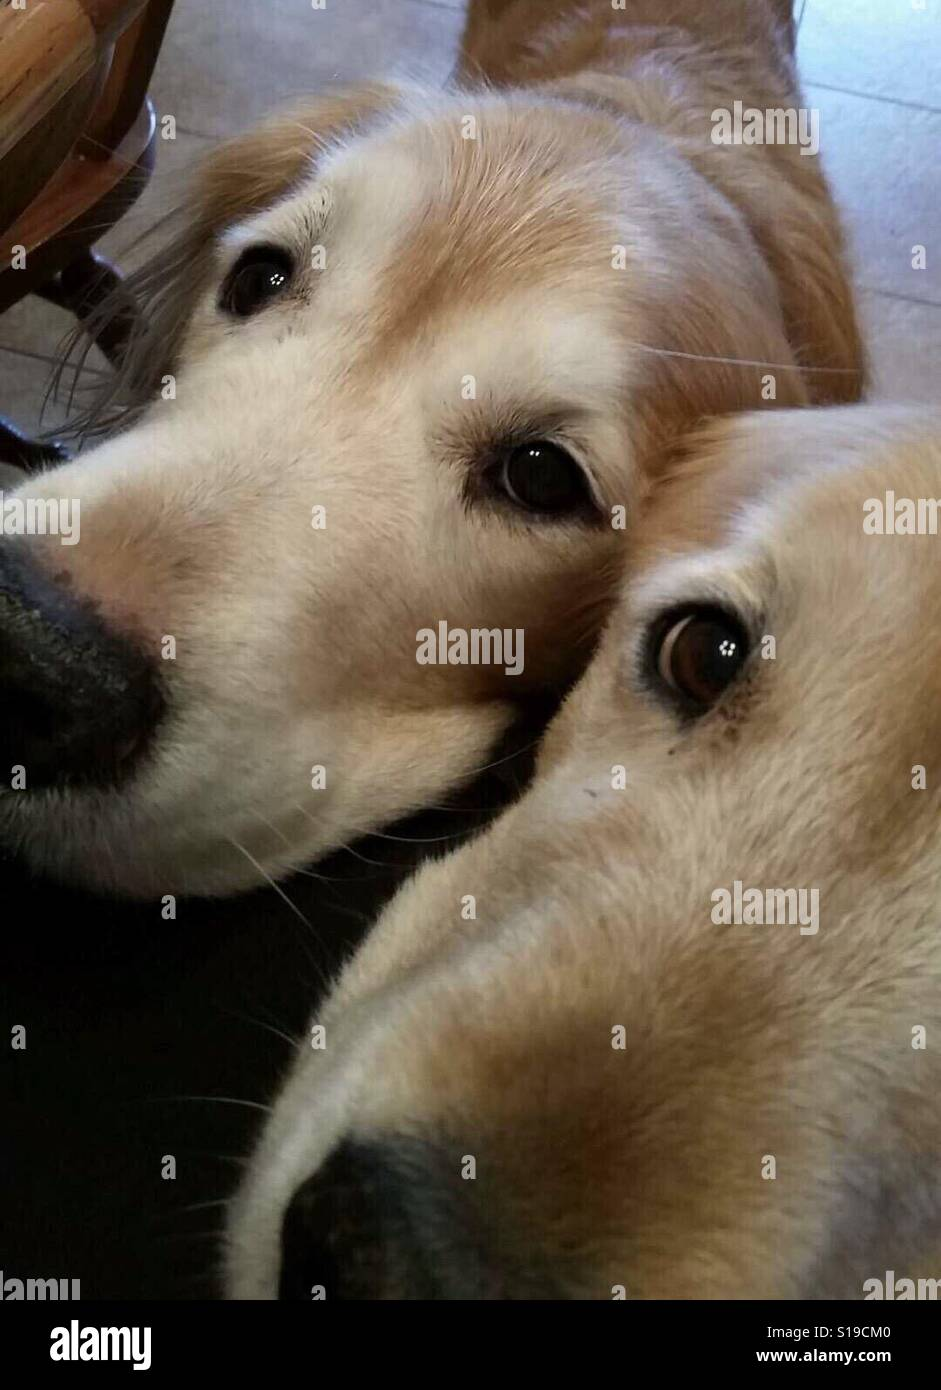 Two Cute Golden Retriever Dogs With Pleading Eyes Stock Photo